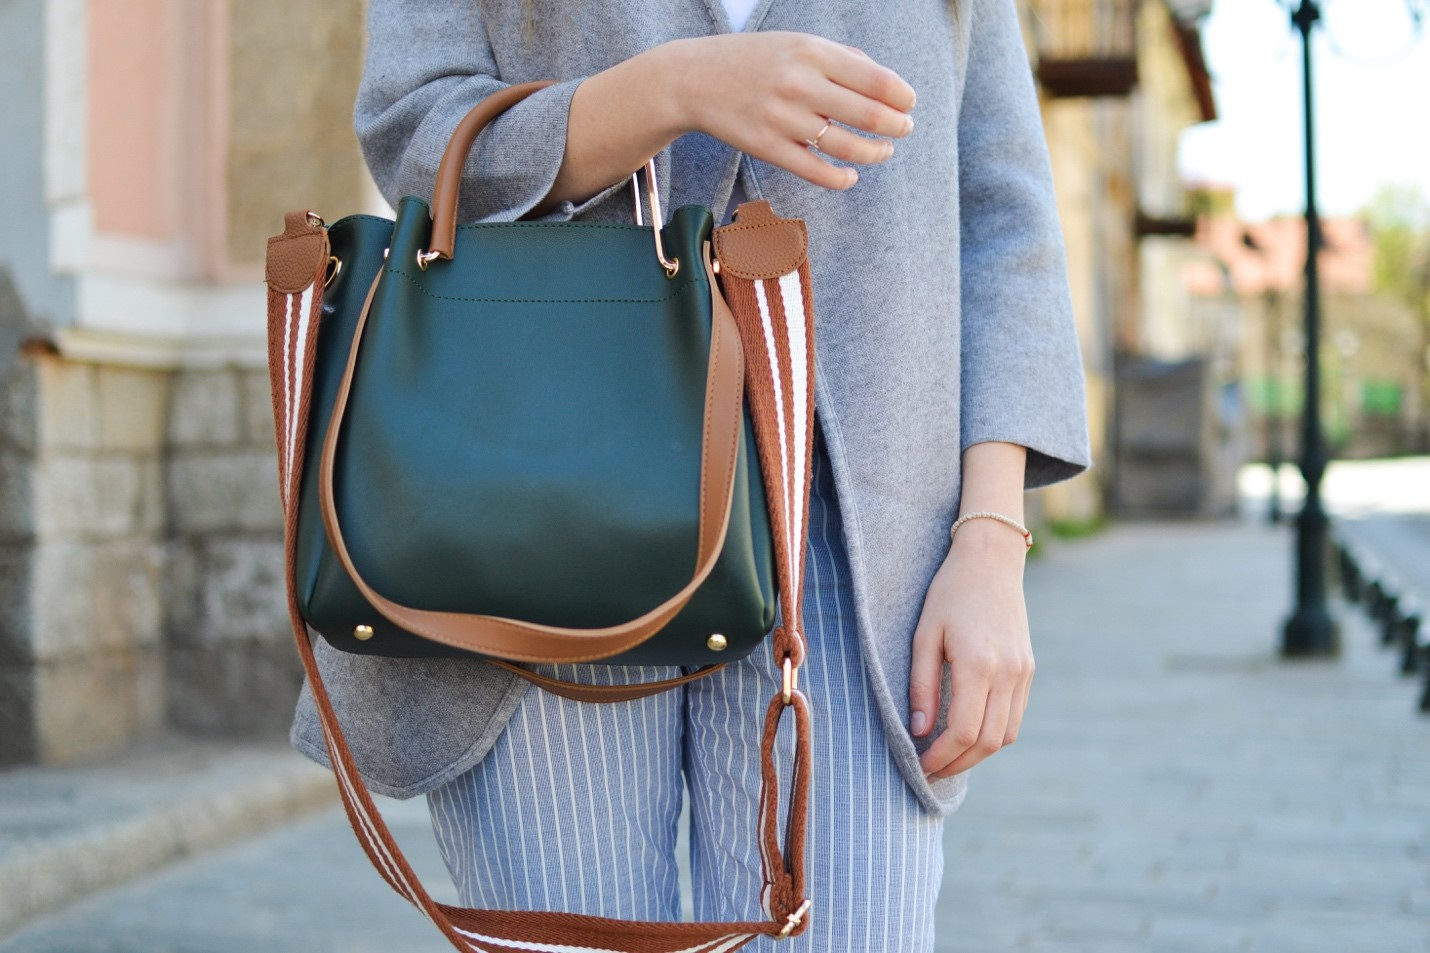 4 Handbags You Need in Your Closet